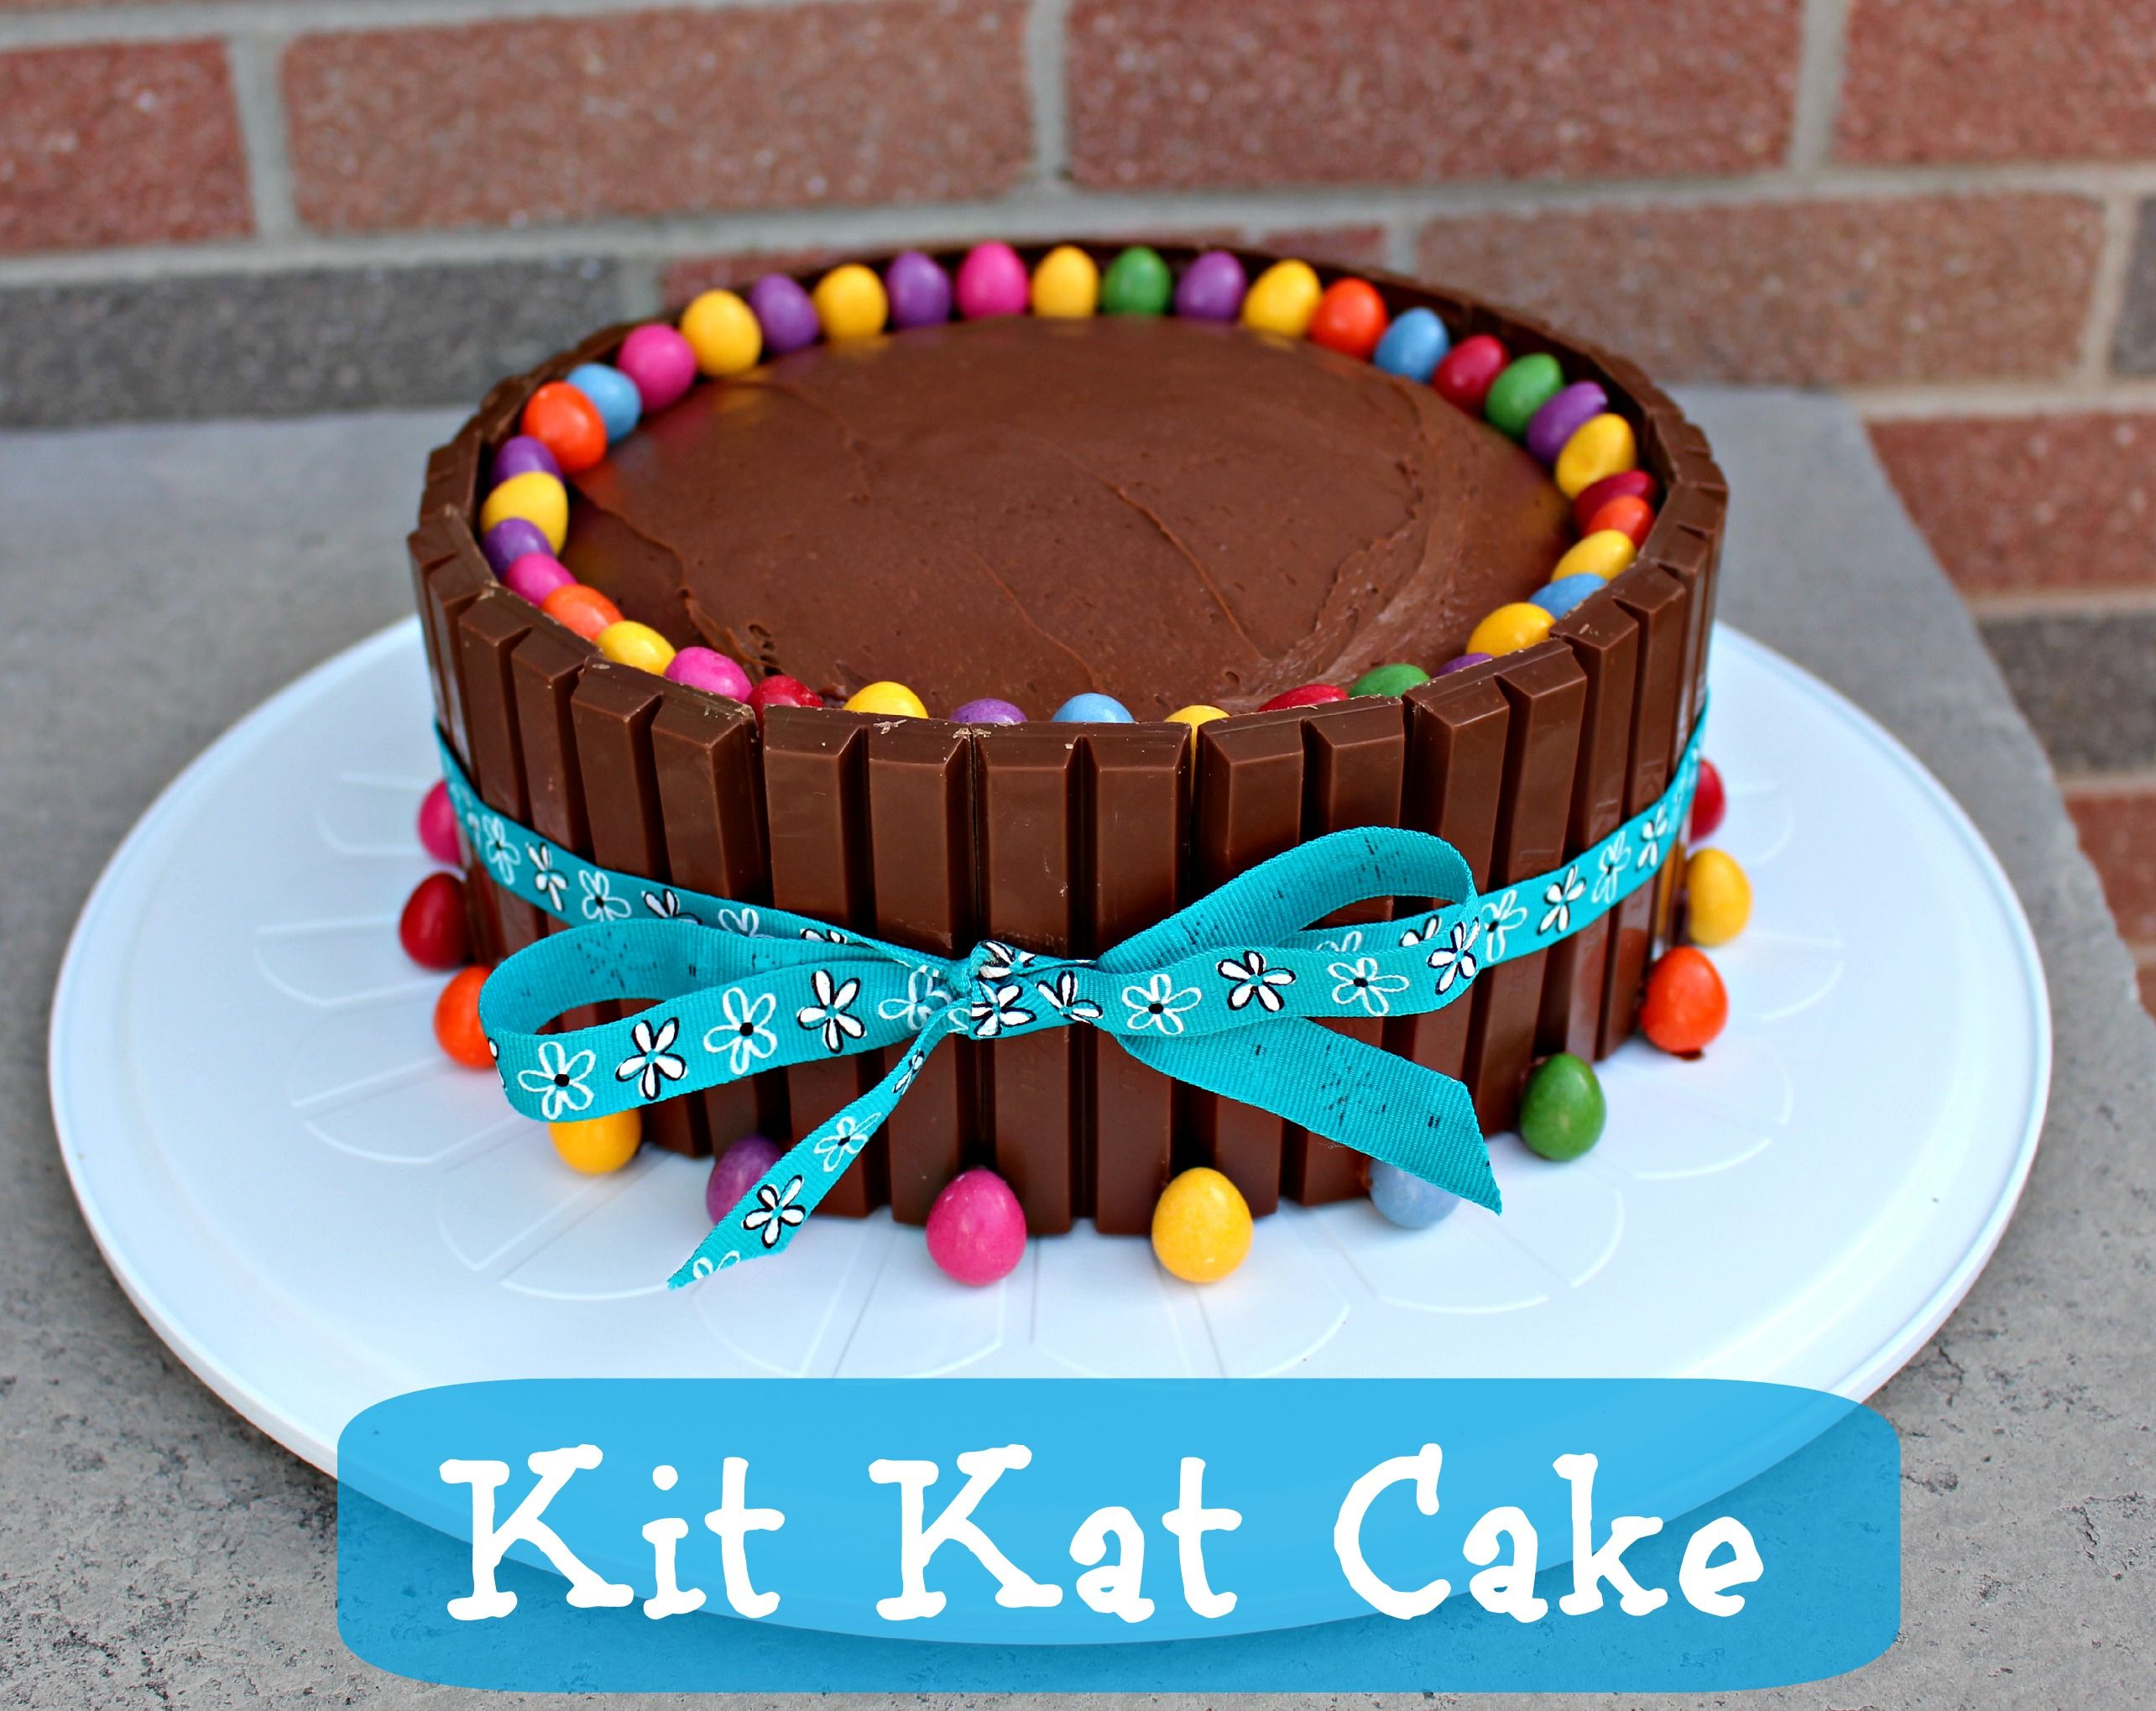 Kit Kat Birthday Cake Birthday Cake Ideas Perfect For Teens Easy To Make And Sure